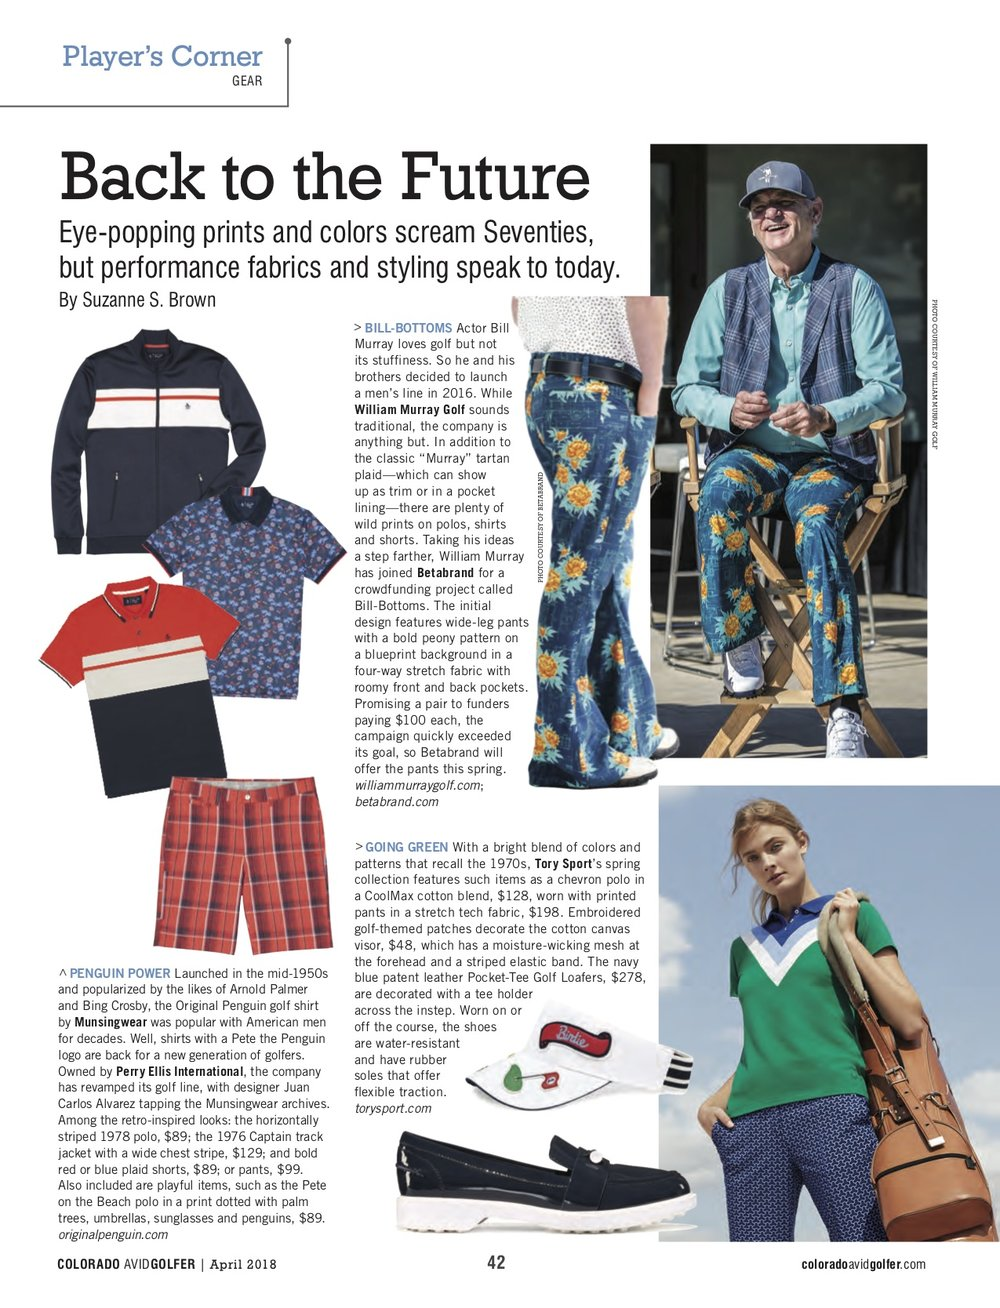 """Bill-Bottoms,"" anyone? Had fun writing about Bill Murray's collaboration with Betabrand; Original Penguin revival and Tory Sport's retro influences for  Colorado Avid Golfer's April issue."